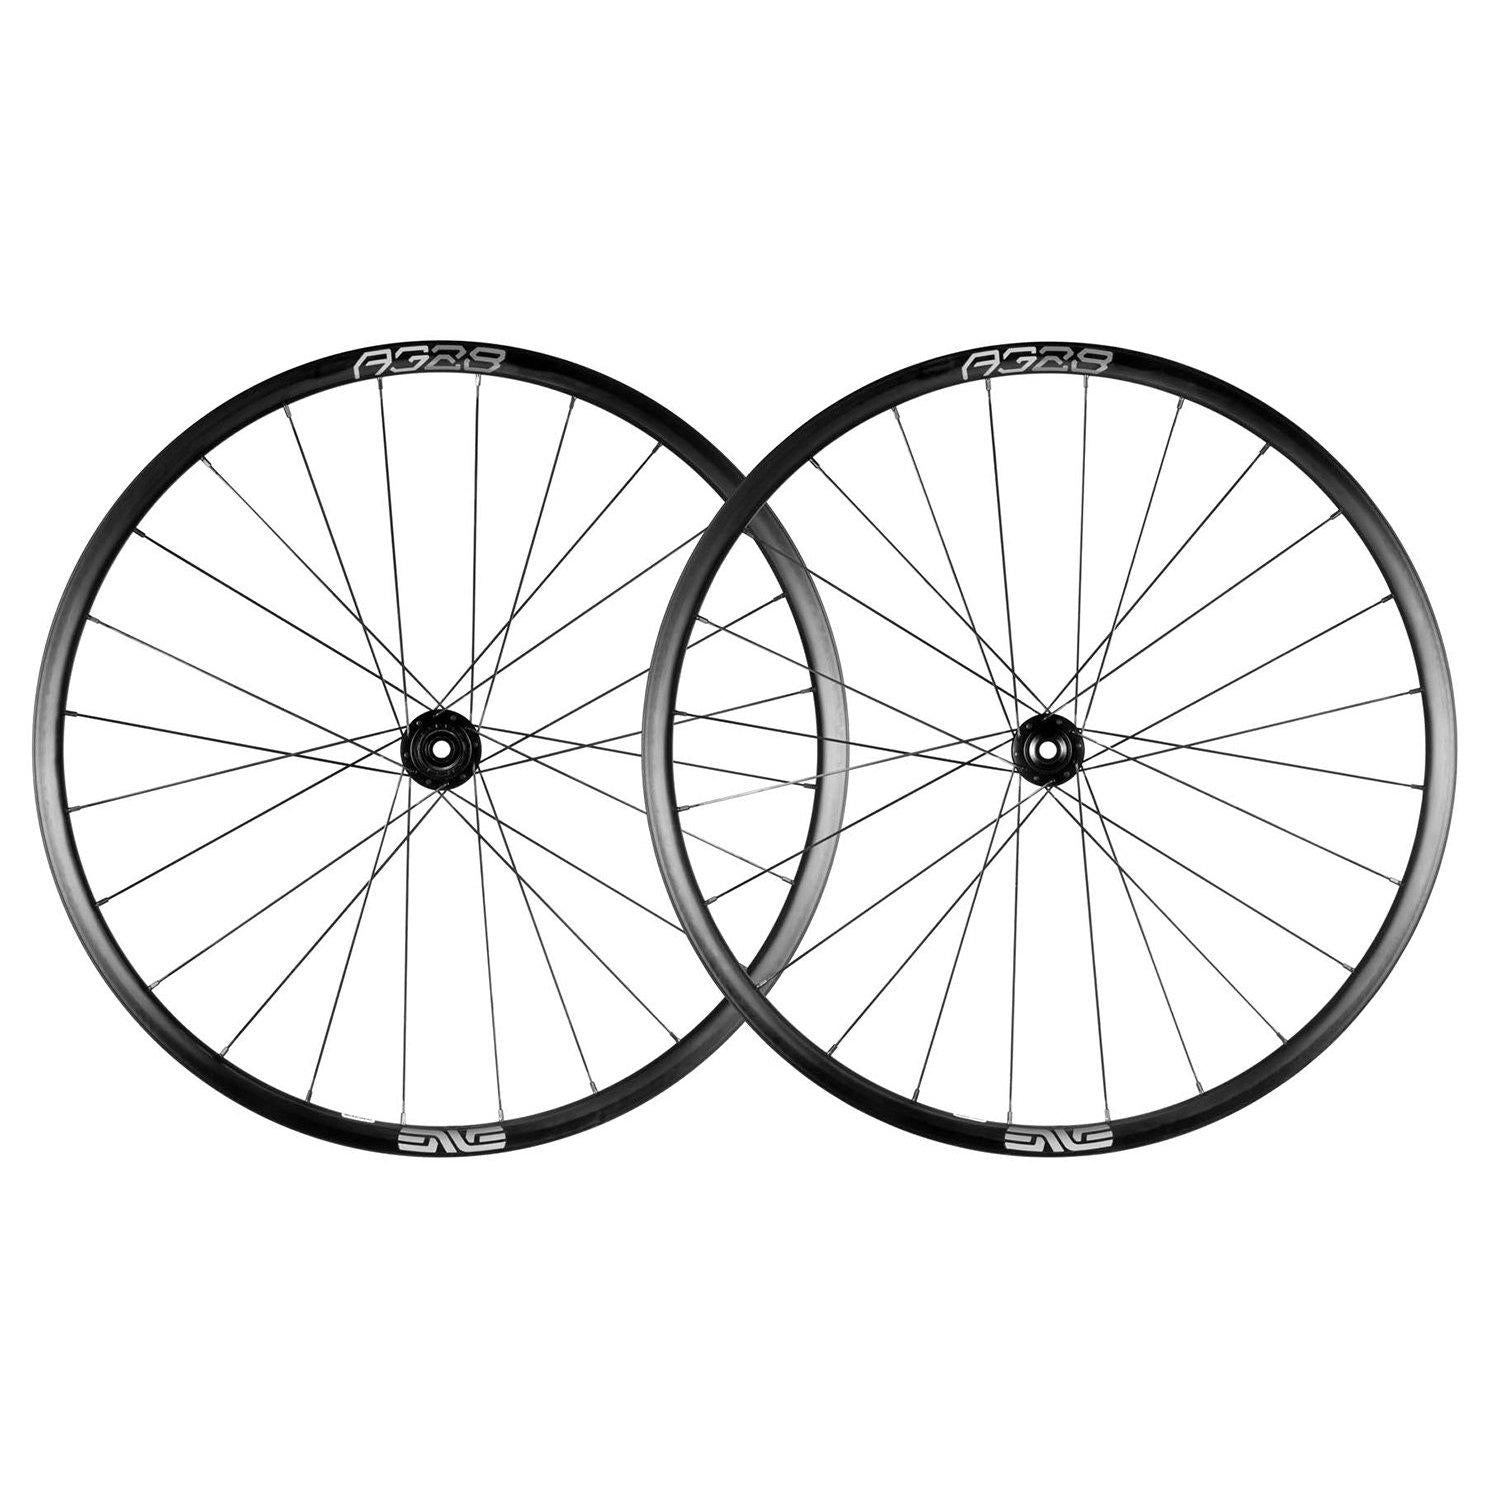 ENVE-ENVE Foundation AG28 Gravel Wheelset-Black - 650b-Industry 9 1/1 Hub - 12/142 - Shimano-EN00FAG281003116005-saddleback-elite-performance-cycling